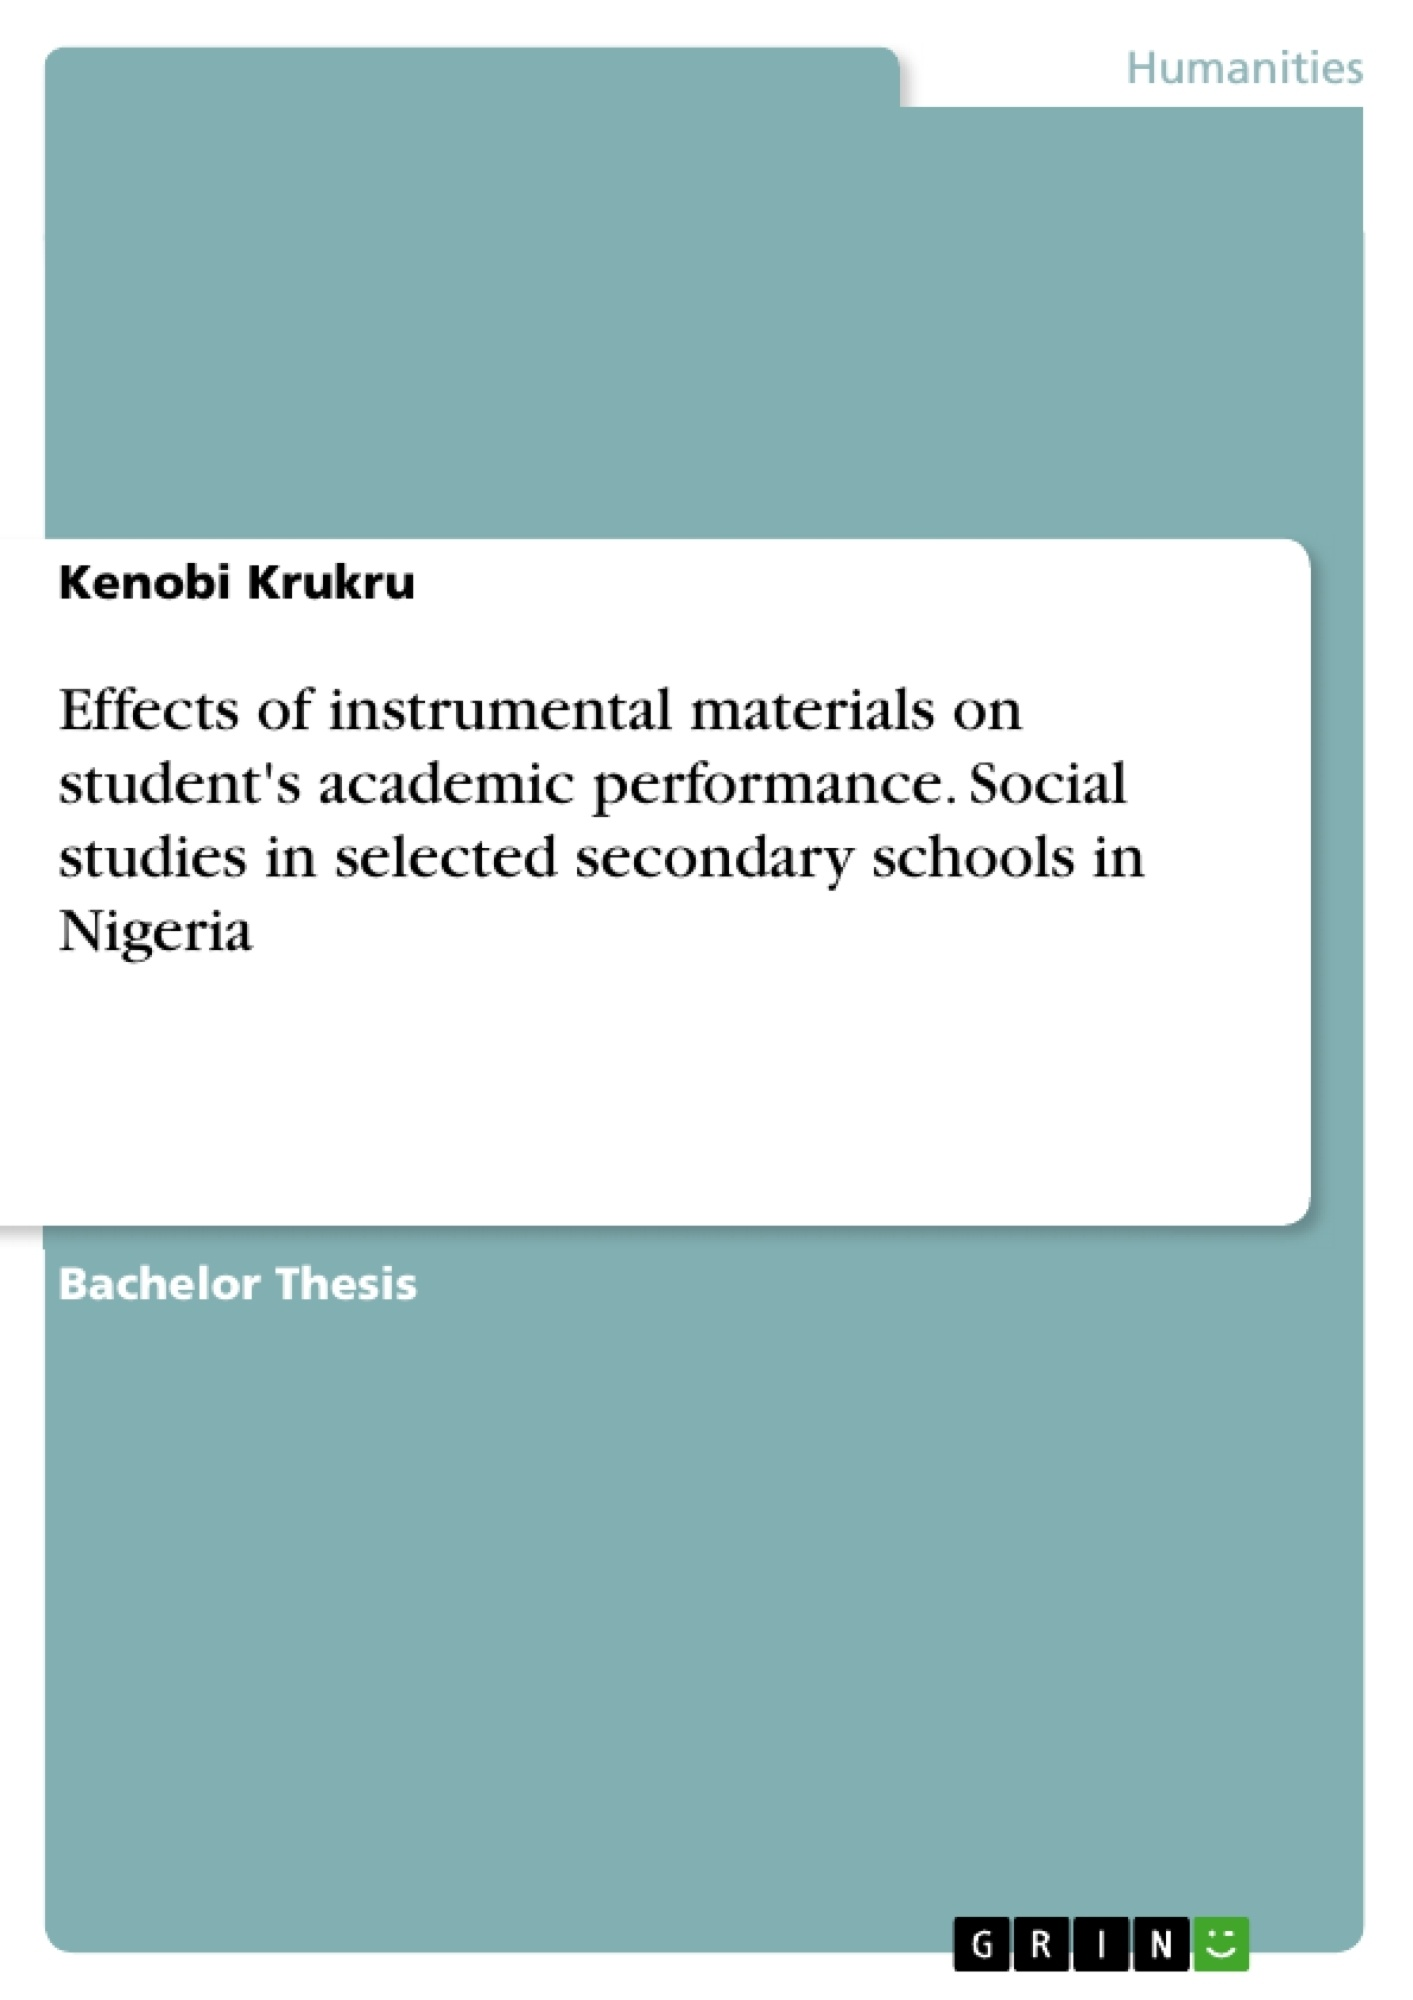 Thesis Statement In Essay  General Essay Topics In English also Narrative Essay Papers Grin   Effects Of Instrumental Materials On Students Academic Performance  Social Studies In Selected Secondary Schools In Nigeria A Modest Proposal Essay